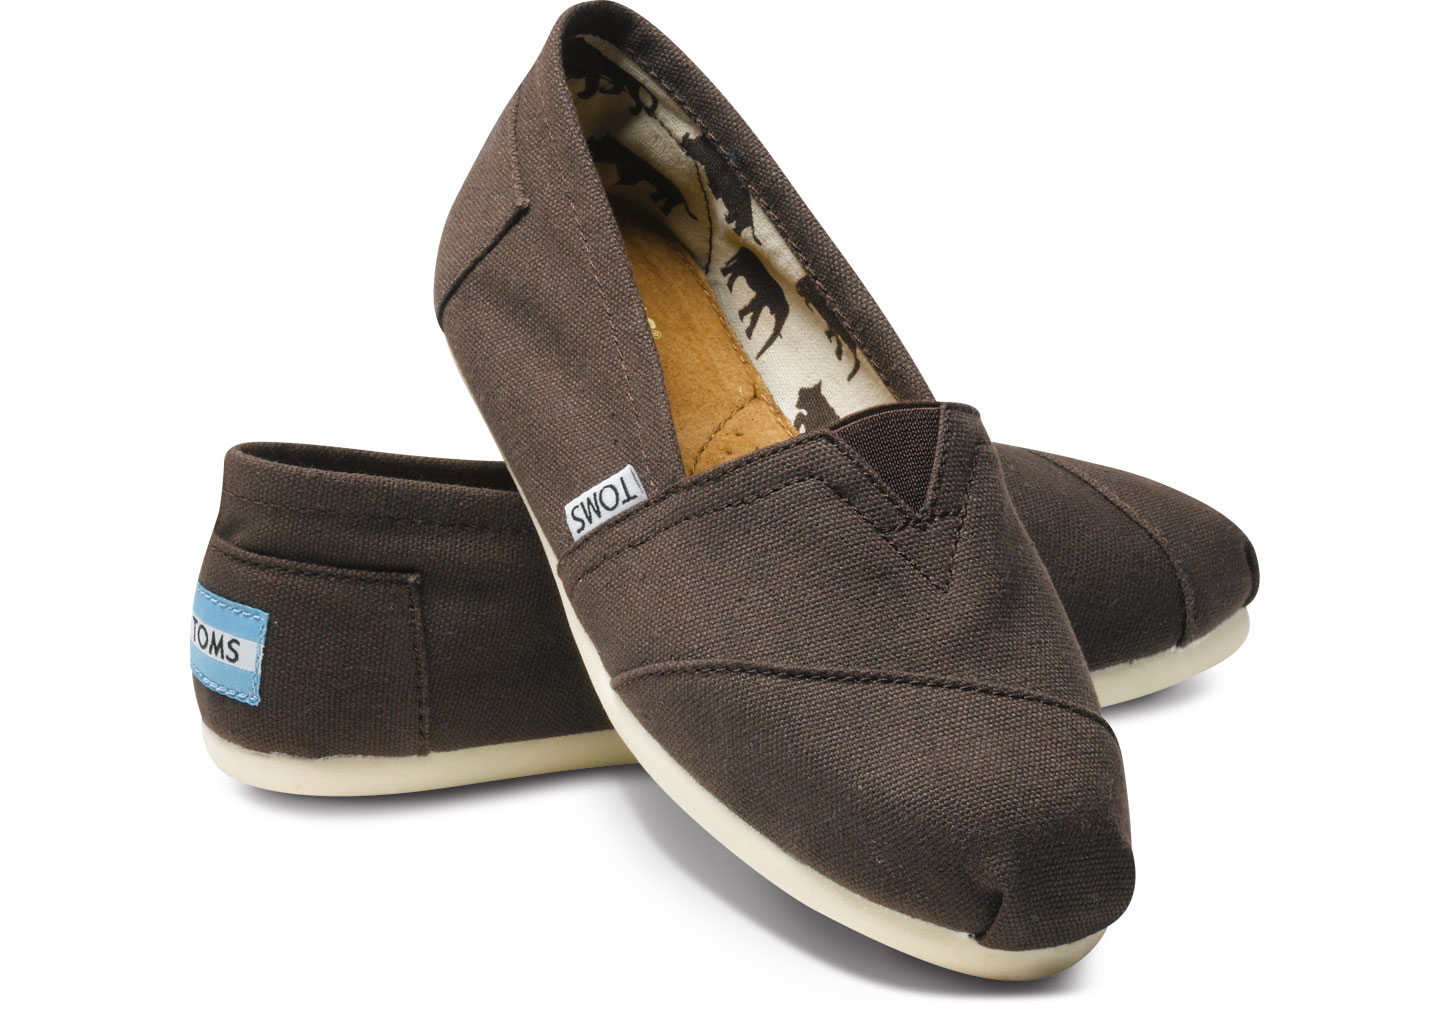 【TOMS】可可色素面基本款休閒鞋  Chocolate Canvas Women's Classics 0